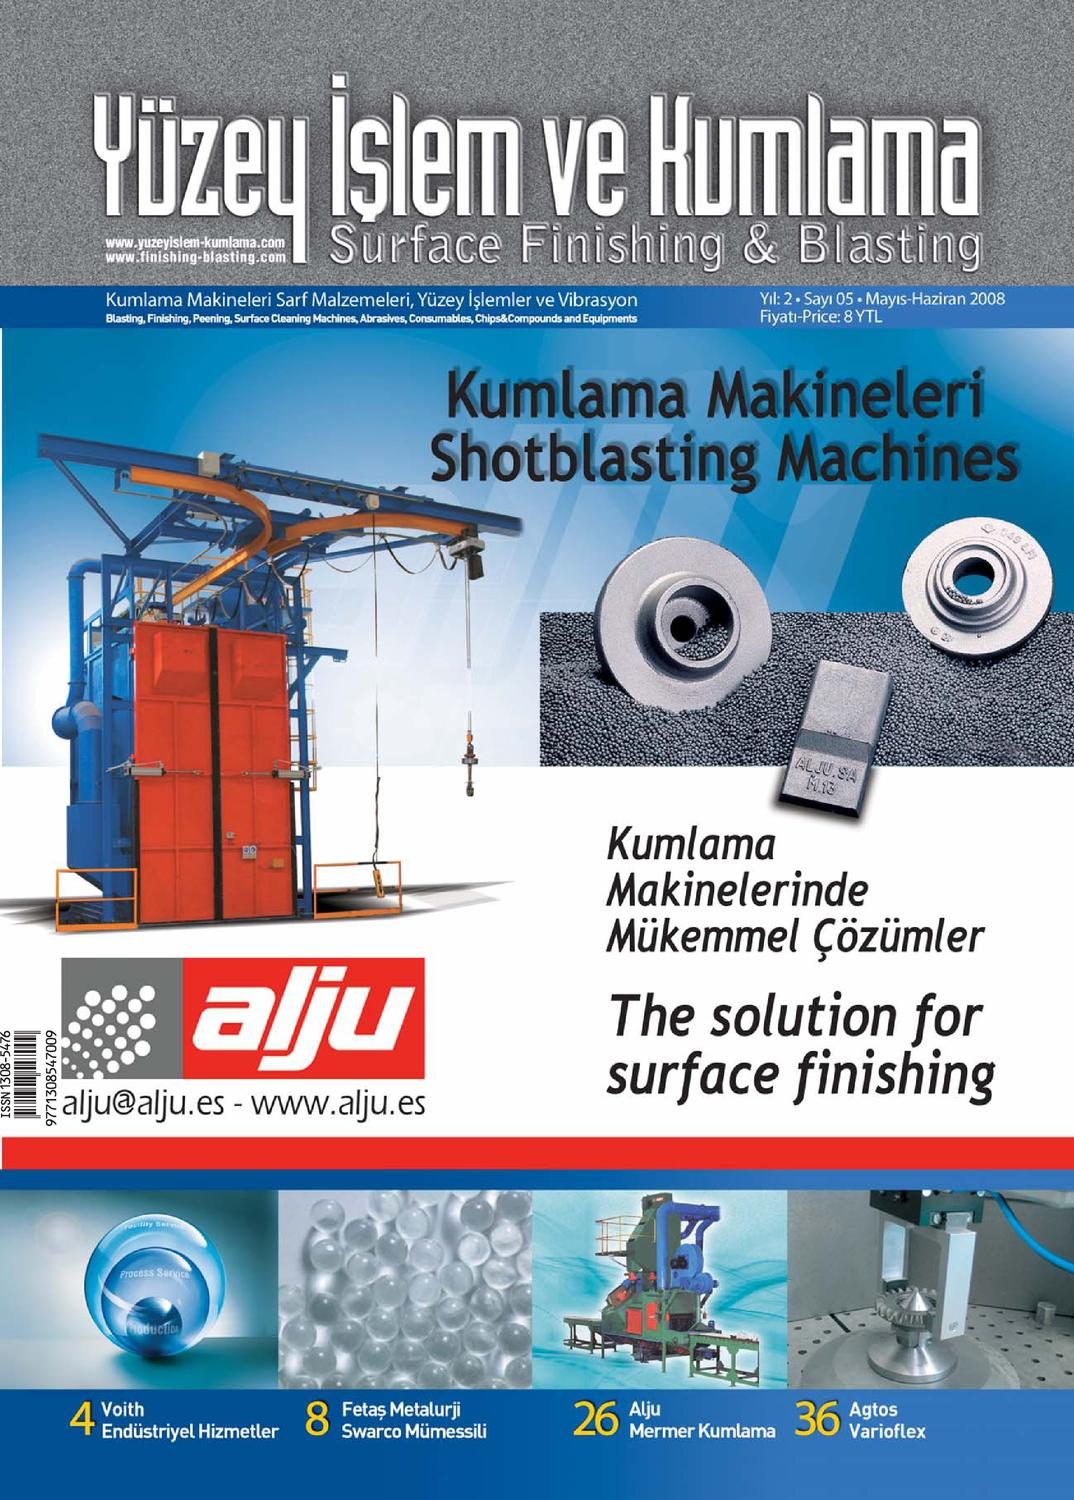 Yuzey Islem Ve Kumlama Dergisi Sayi7 By Surface Finishing Issuu